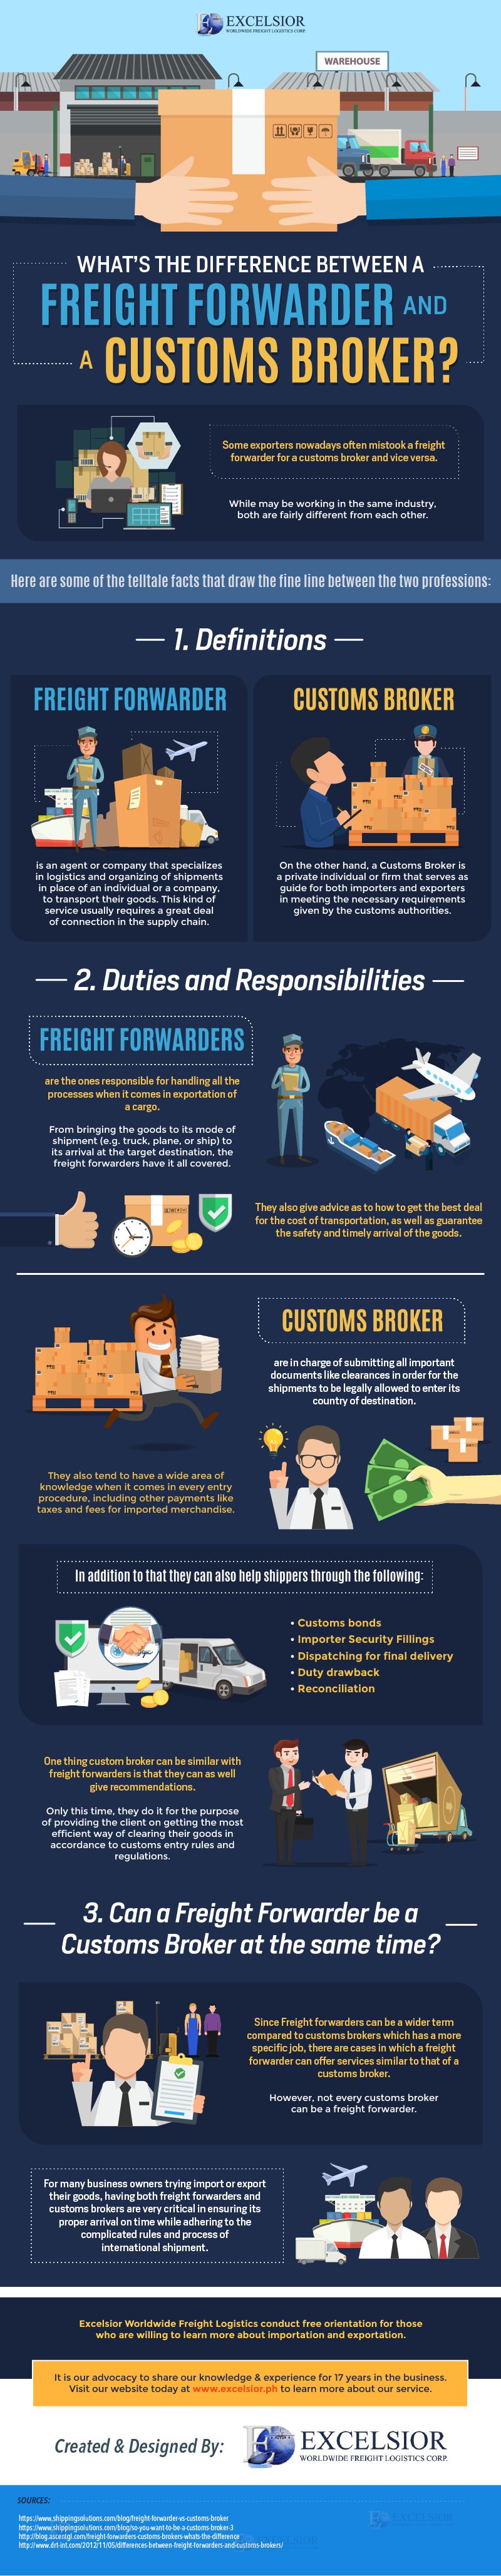 Difference Between a Freight Forwarder and a Customs Broker – Infographic